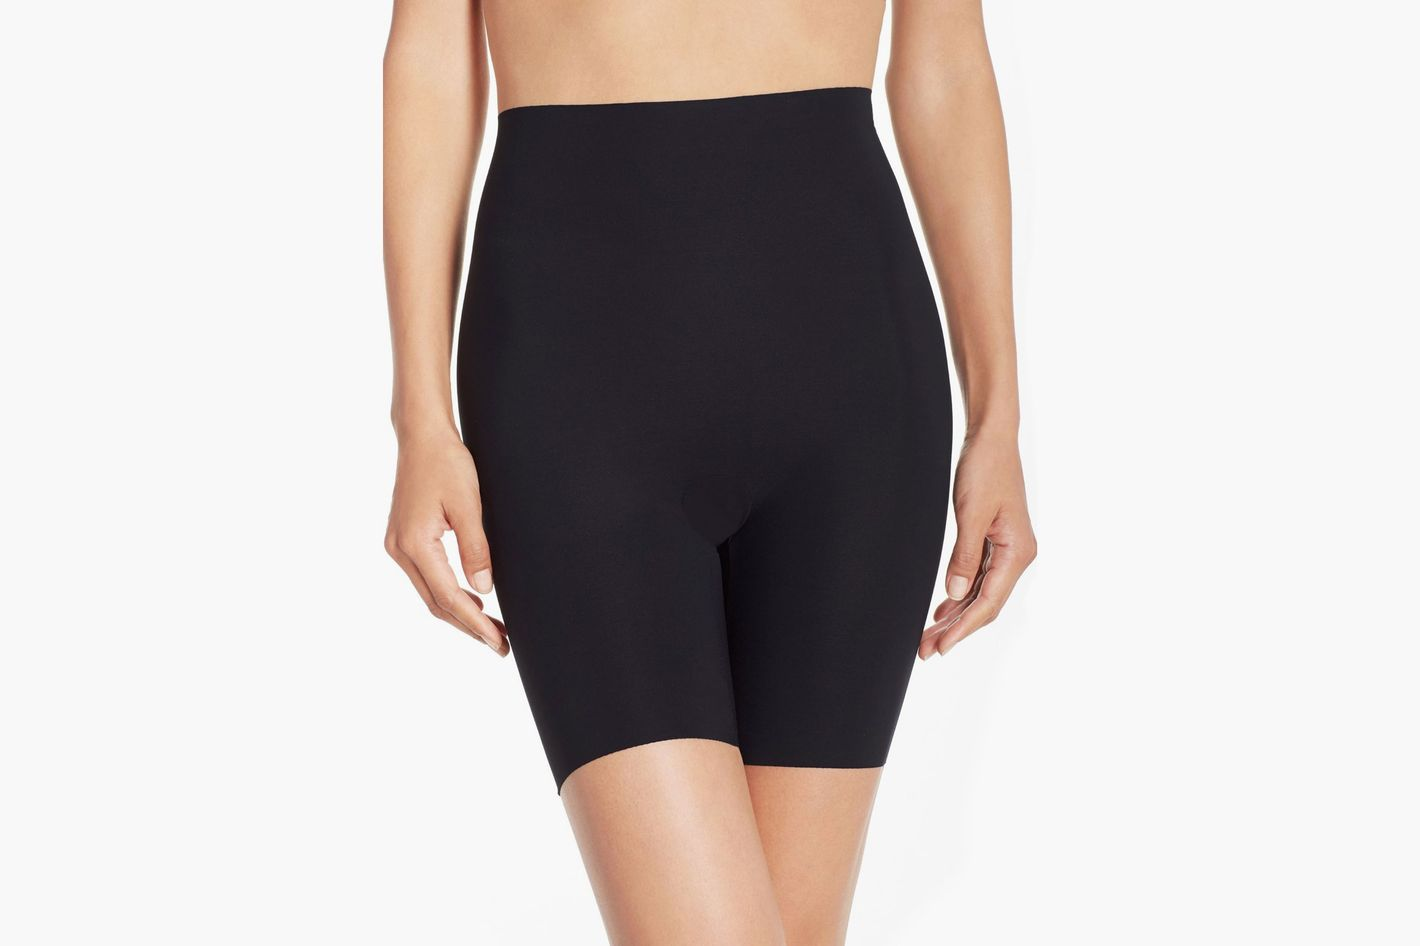 e7a8845a00a Commando Control High Waist Shaping Shorts at Nordstrom